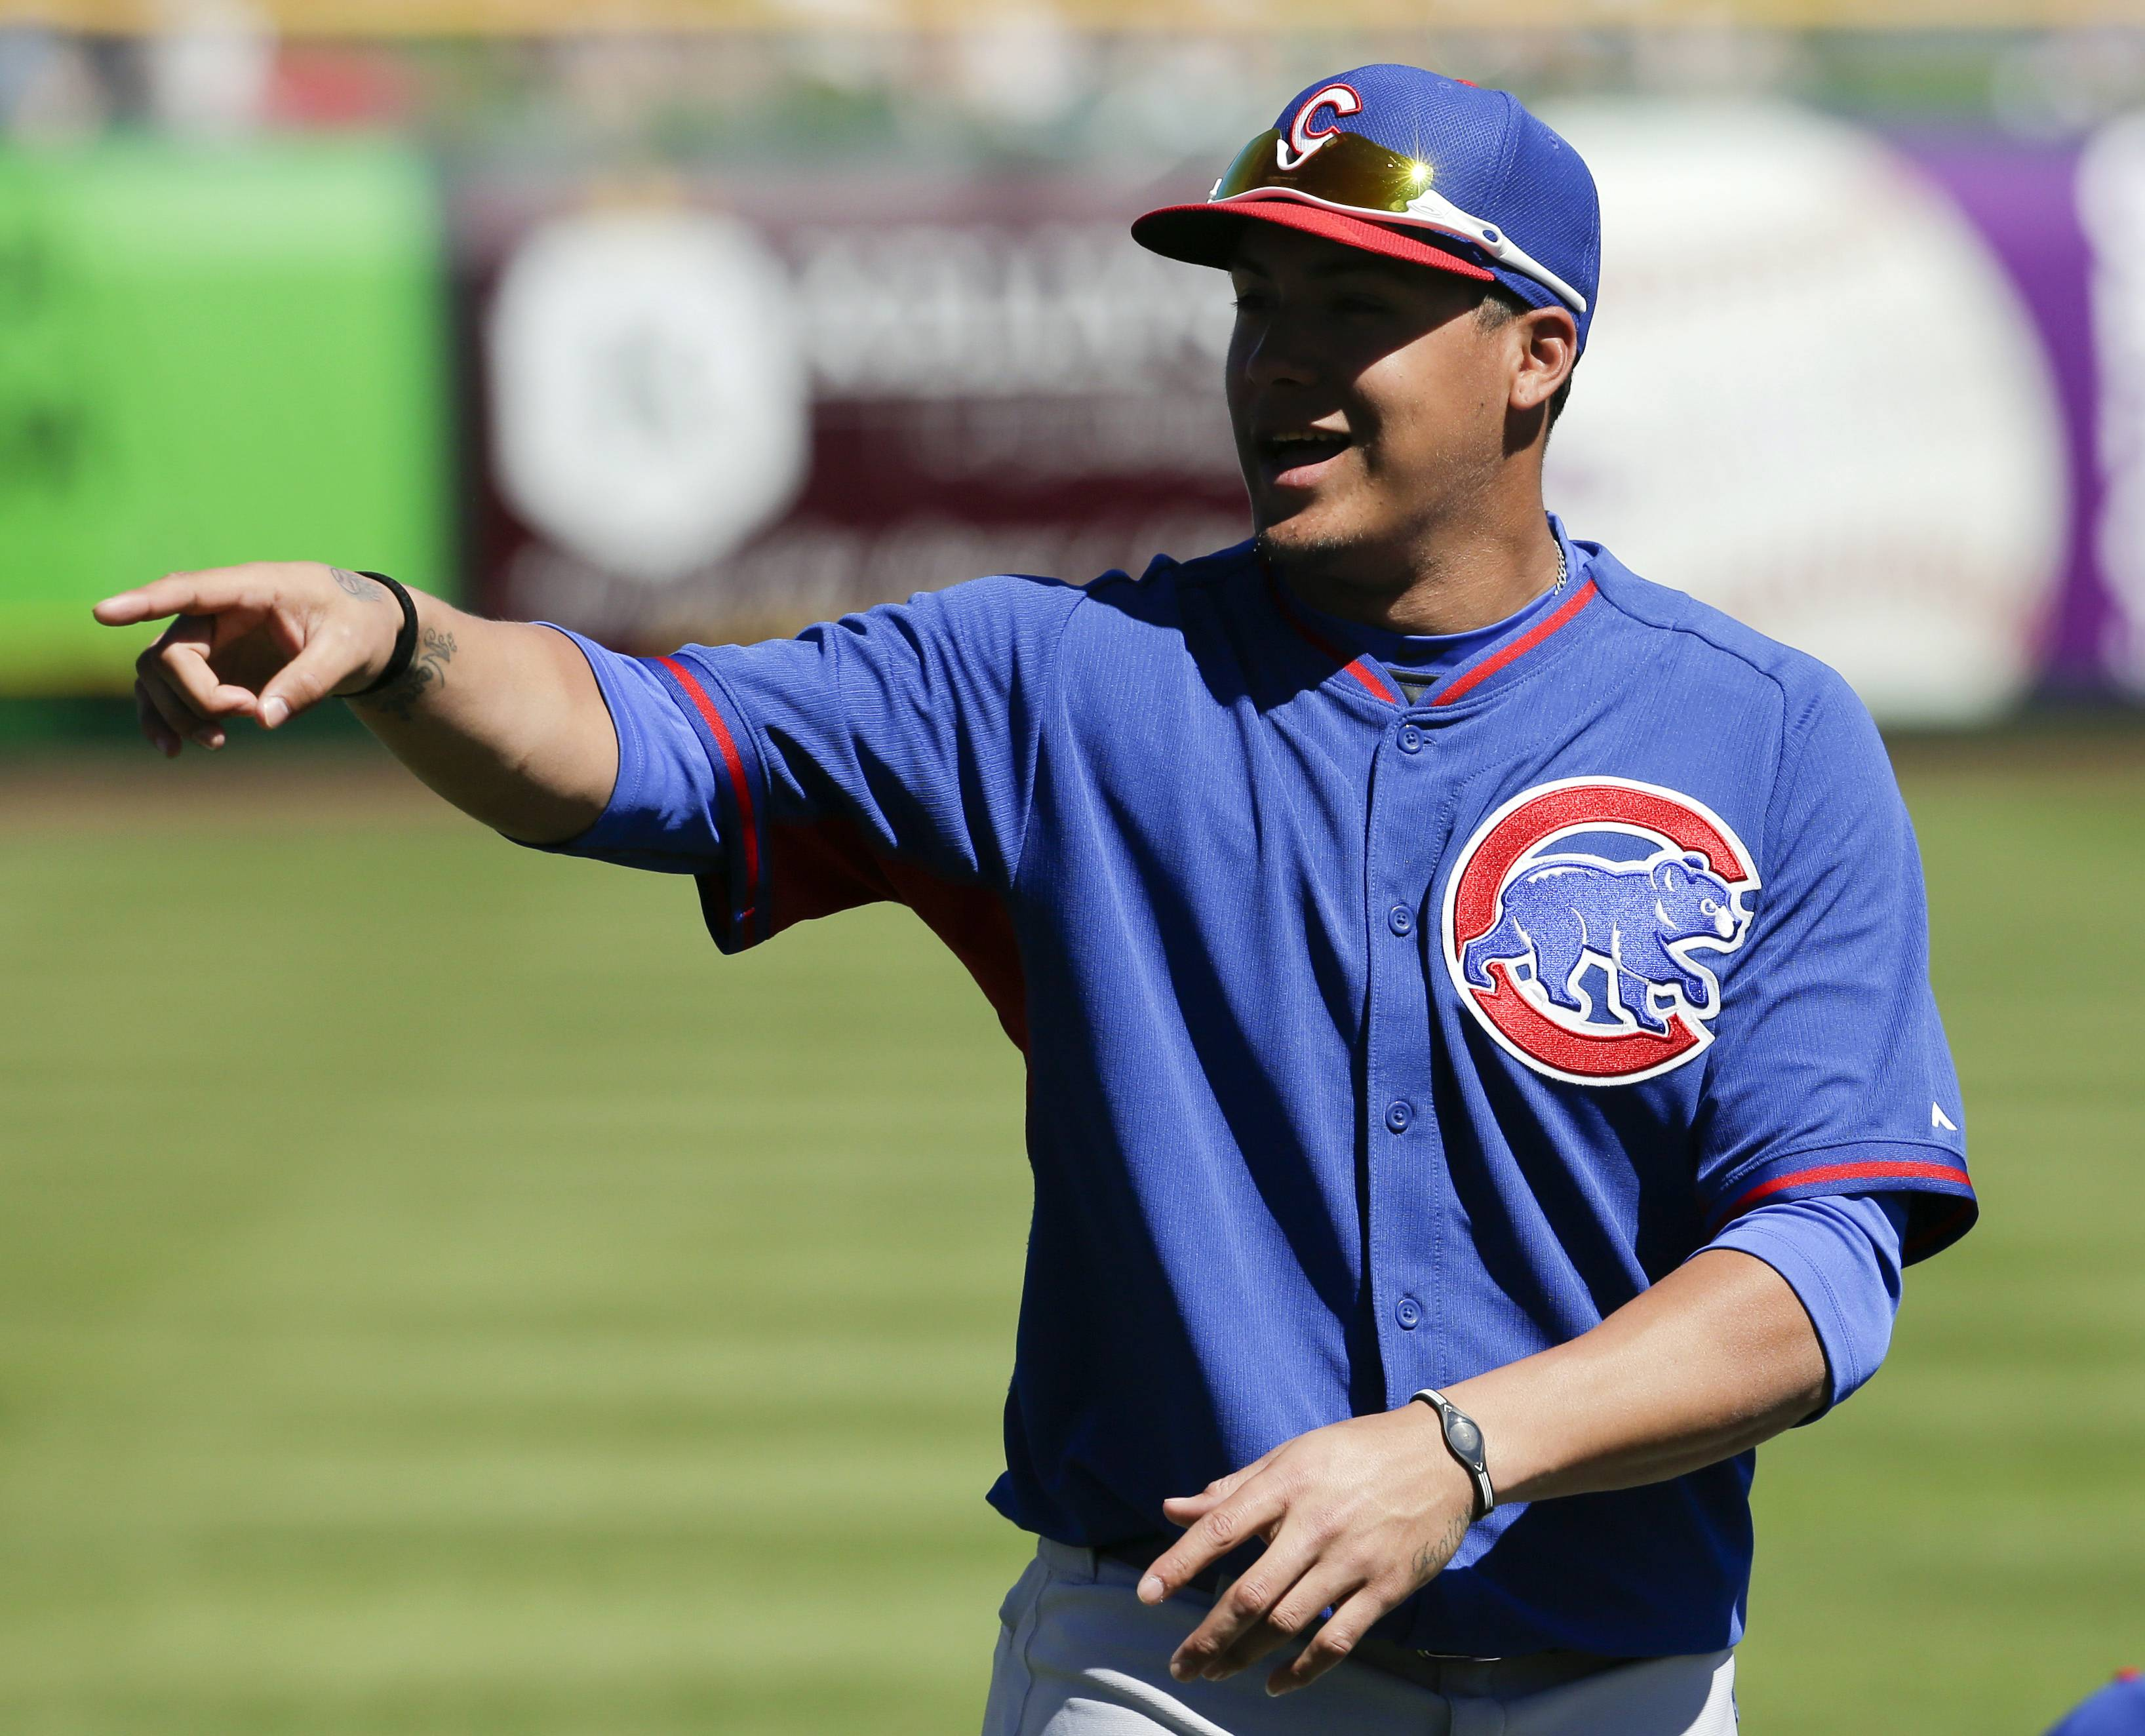 Baez just the boost Chicago baseball needed